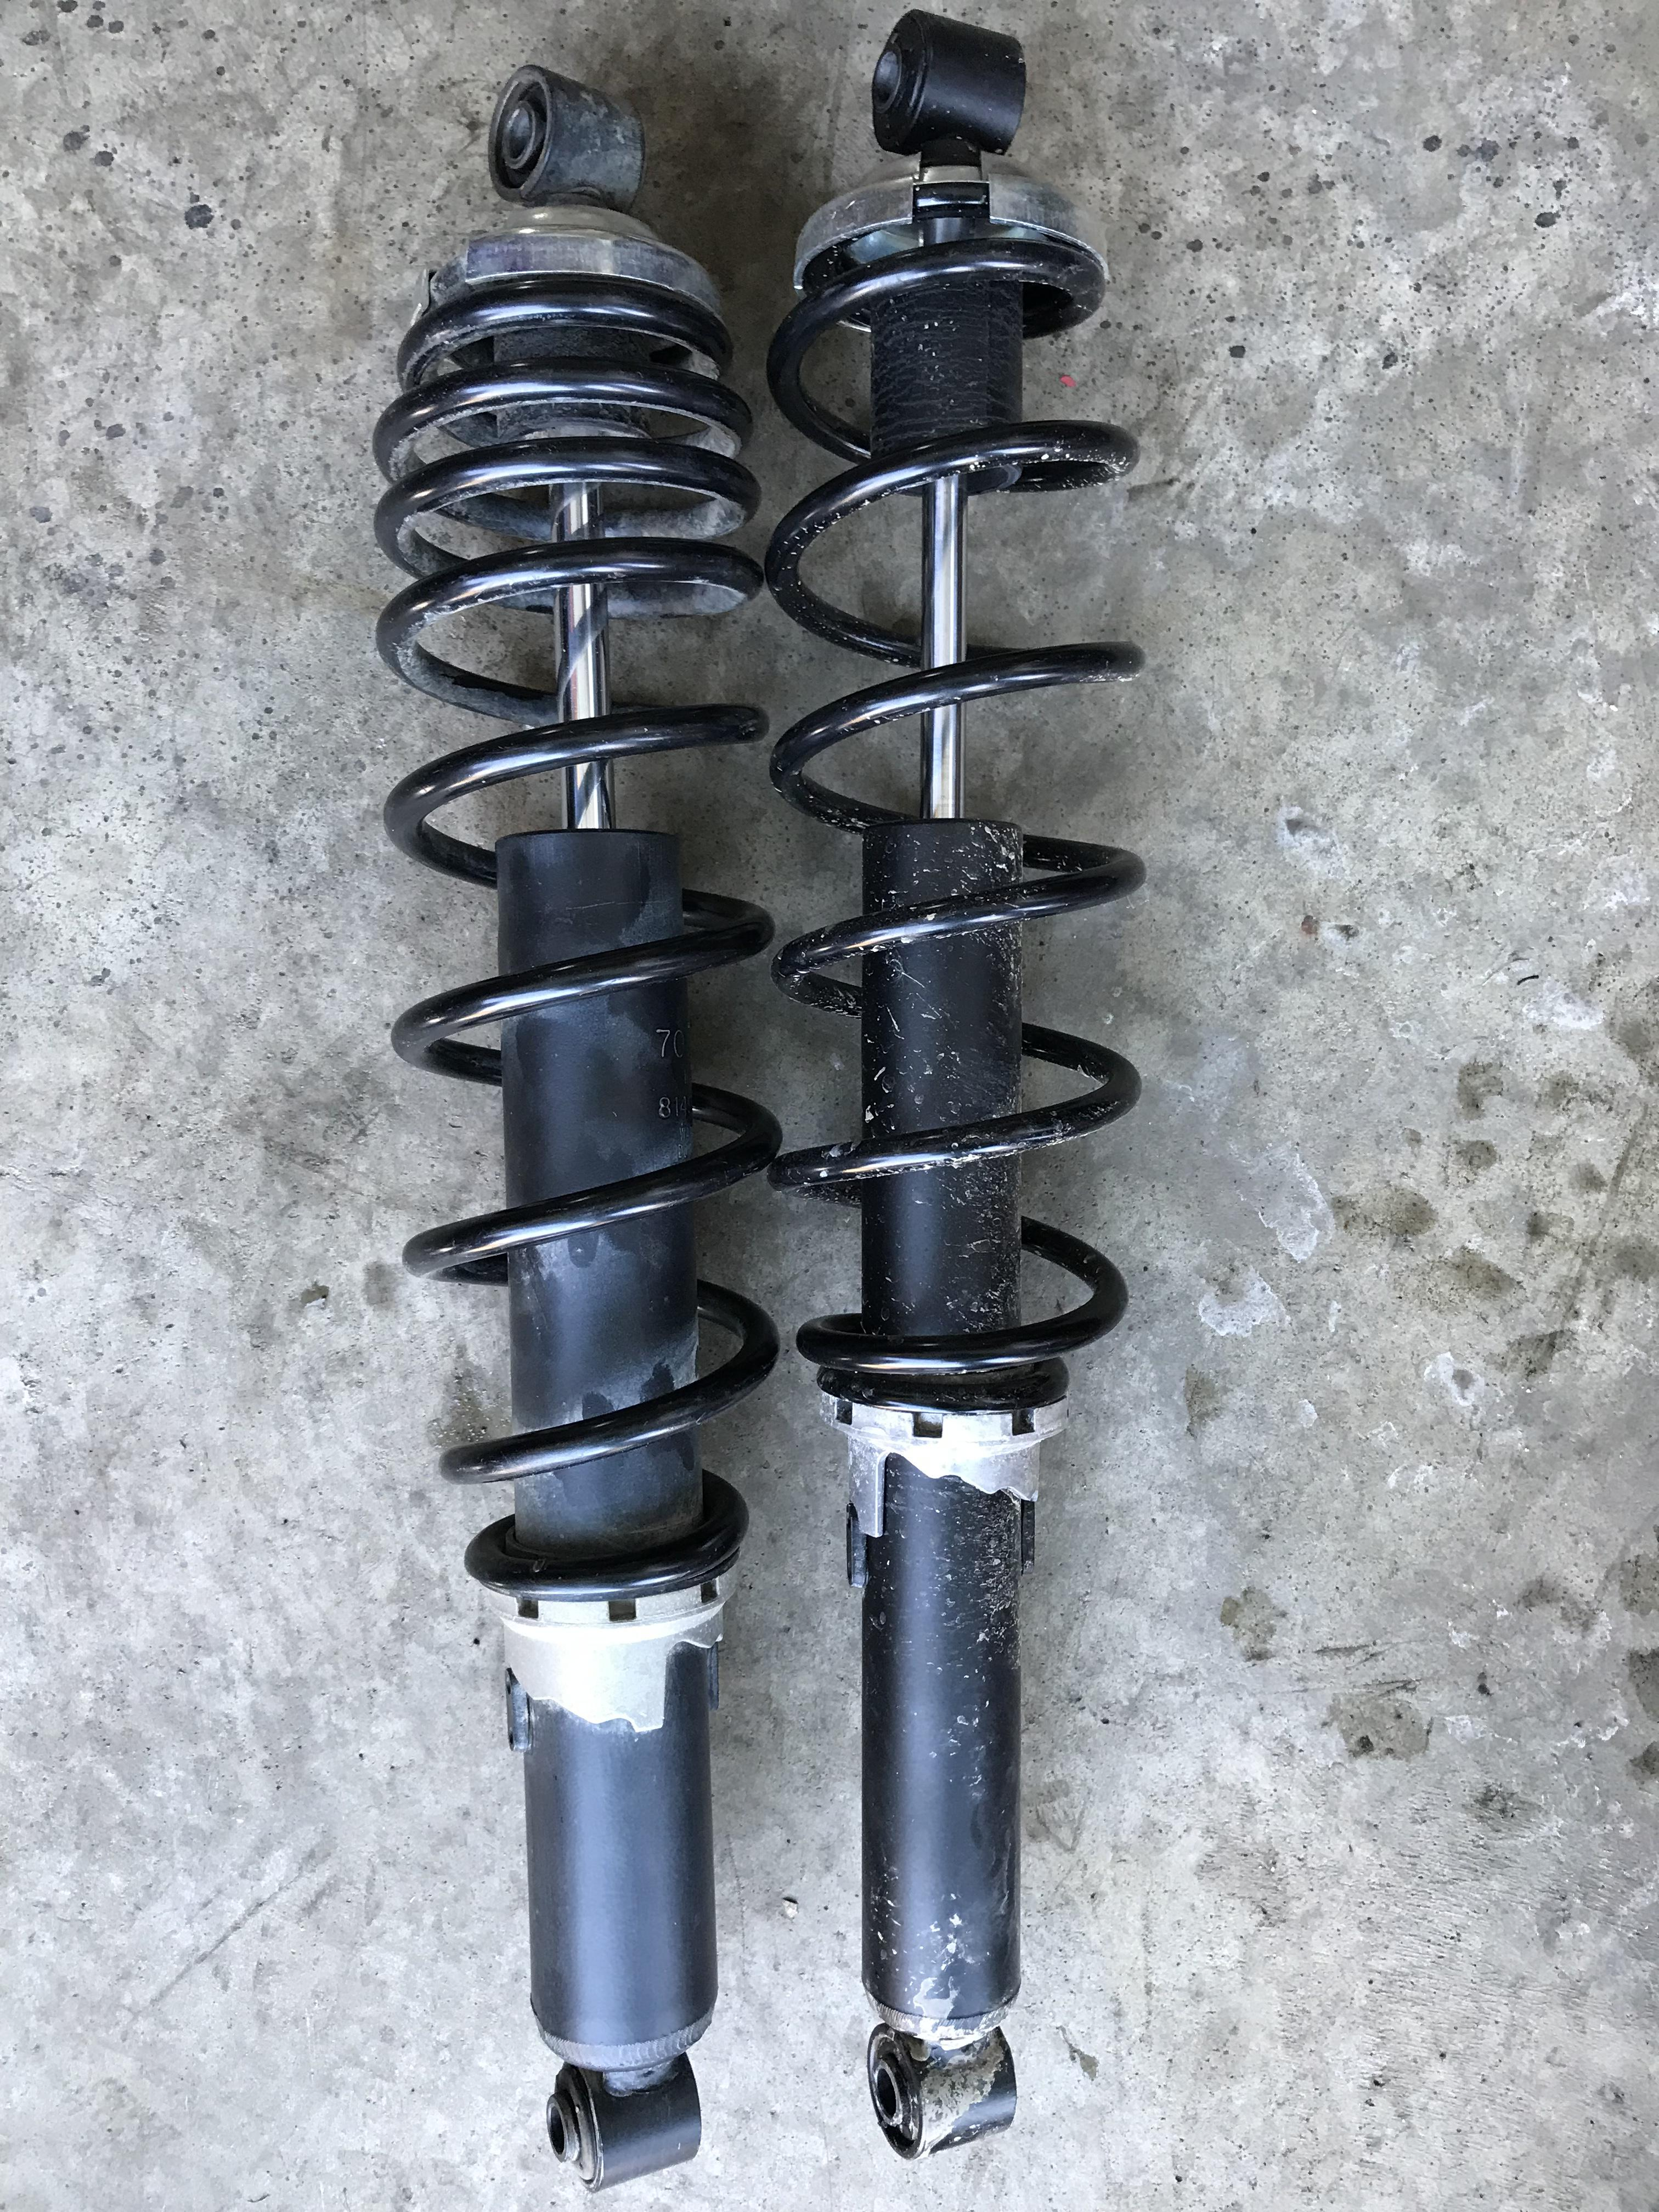 570 XT HD Springs | Can-Am ATV Forum